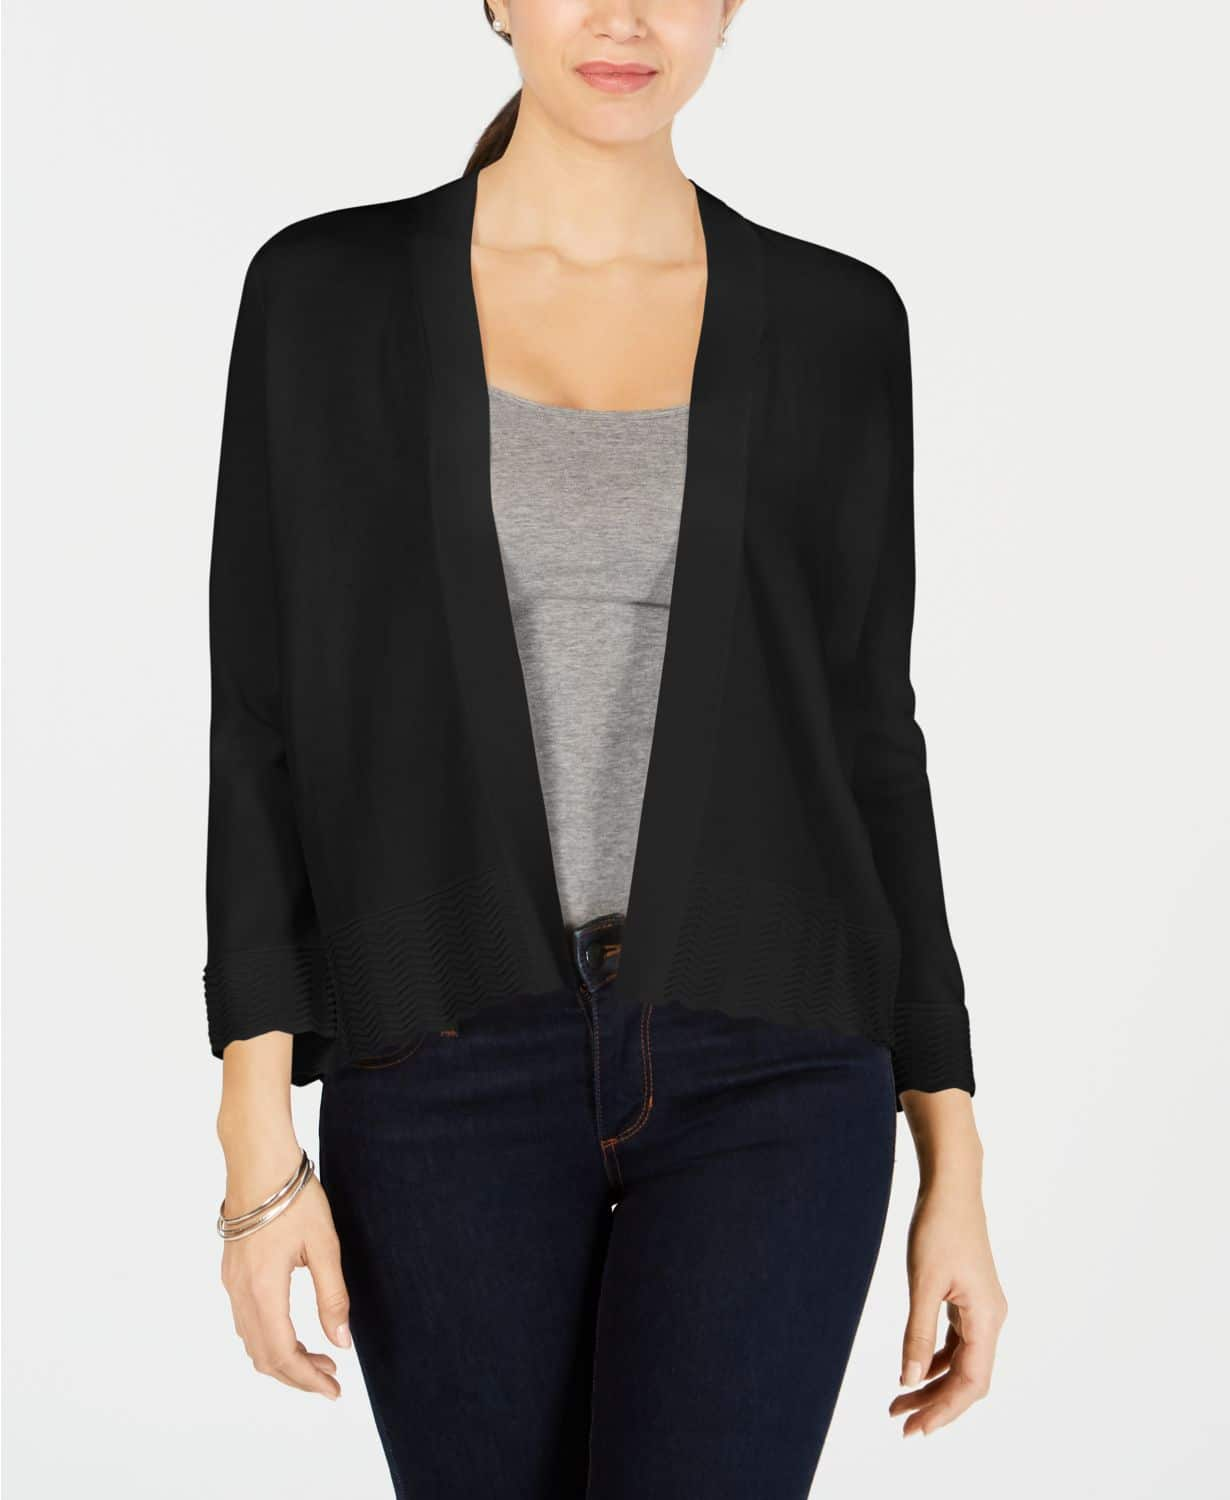 Women's Sweater Sale:Textured Knit Open Cardigan $10, Style & Co Draped High-Low Cardigan $15 & More + Free Ship to Store at Macy's